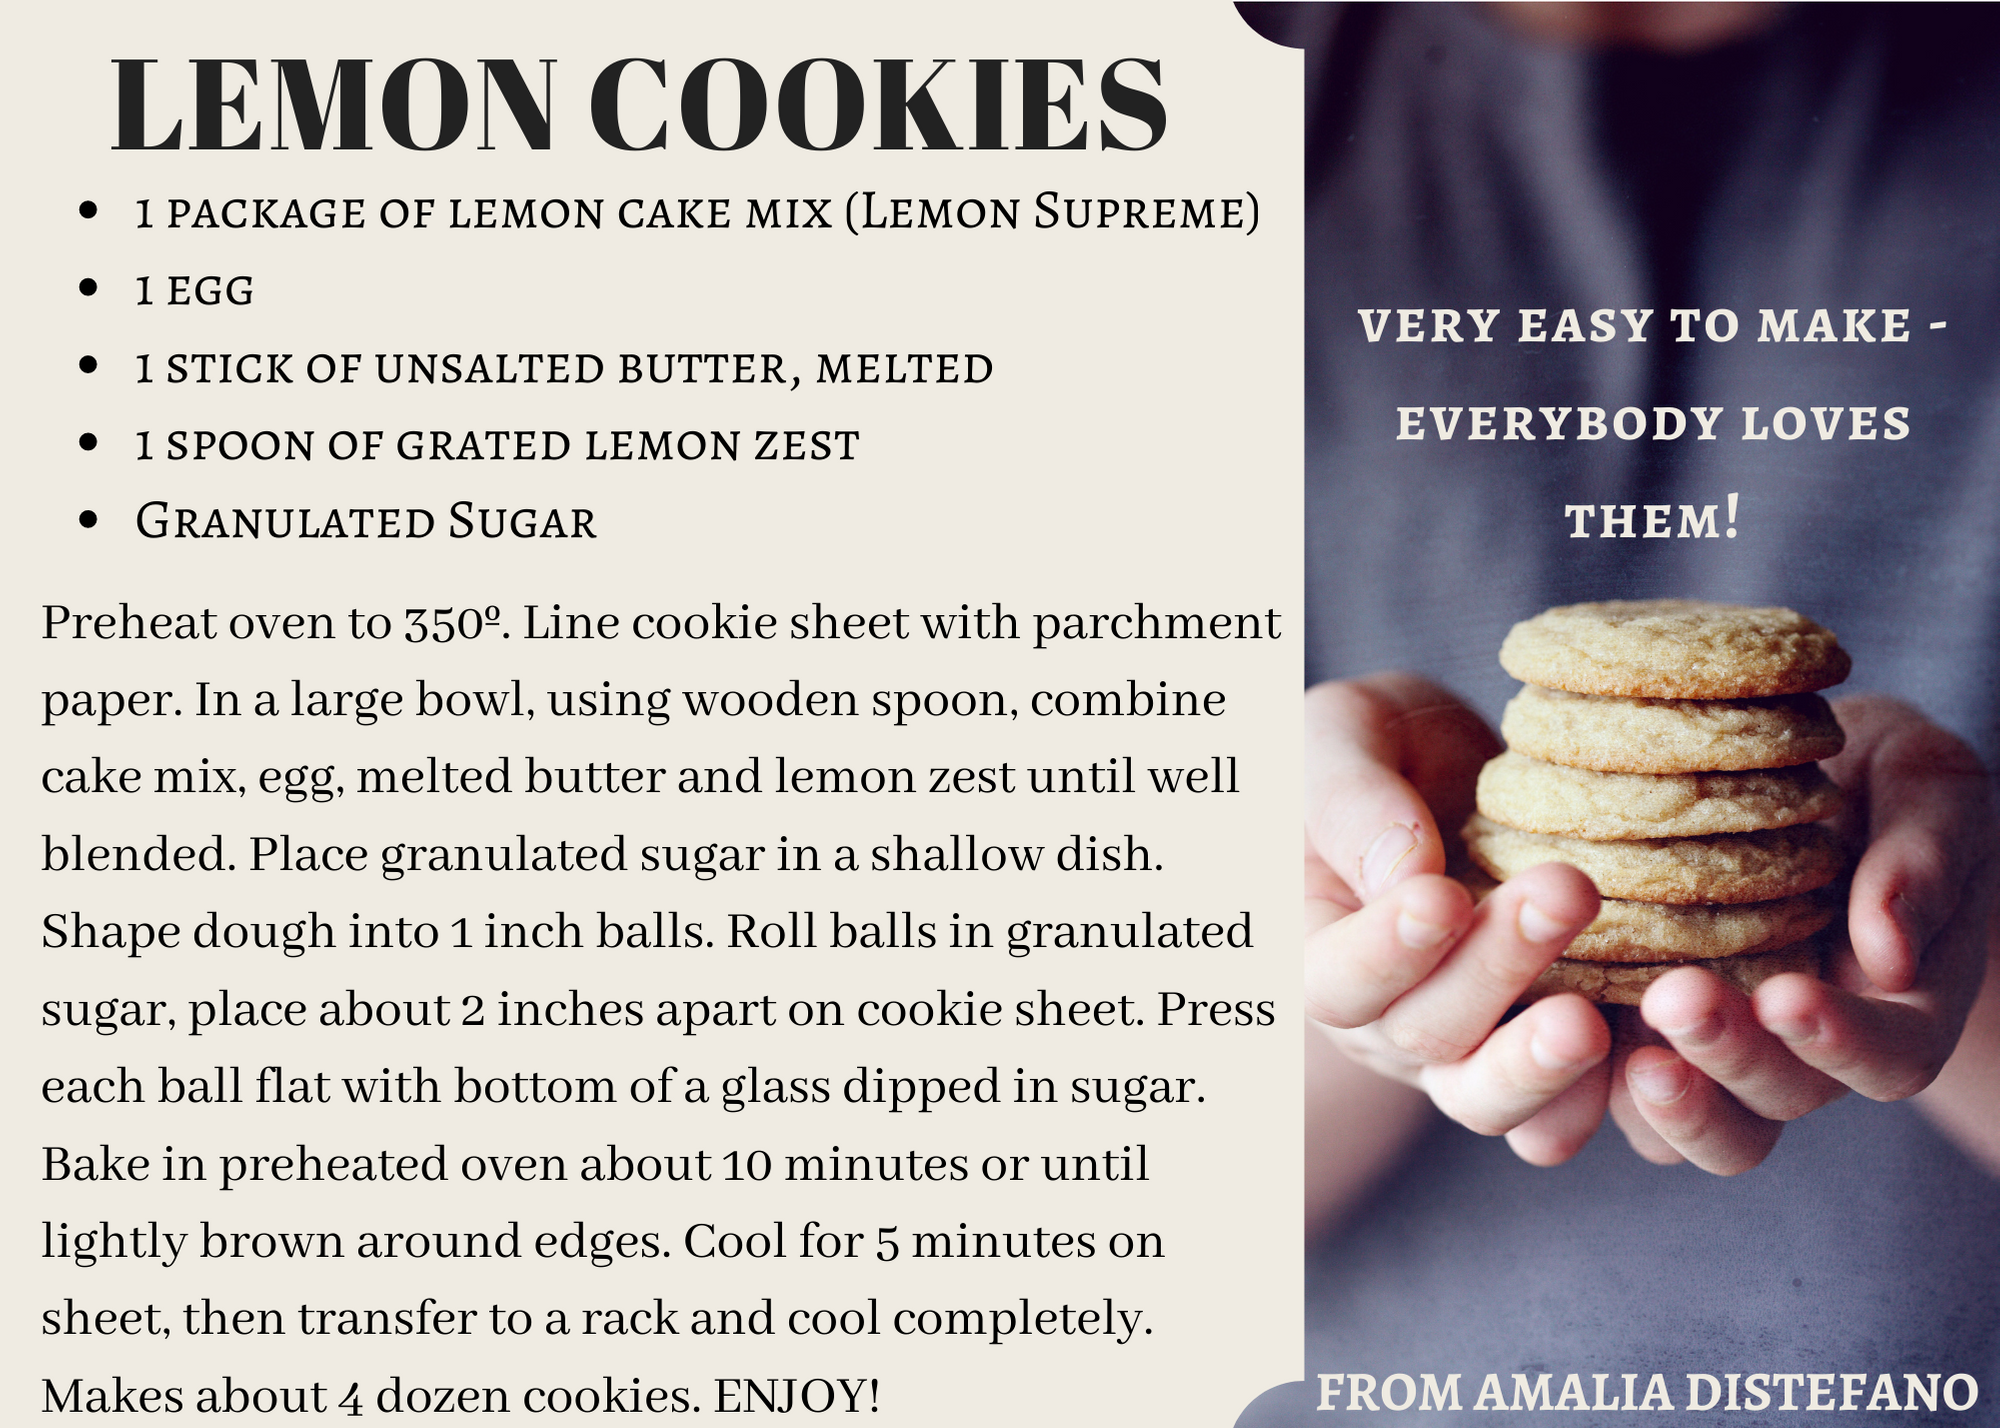 Lemon Cookies for March Opens in new window